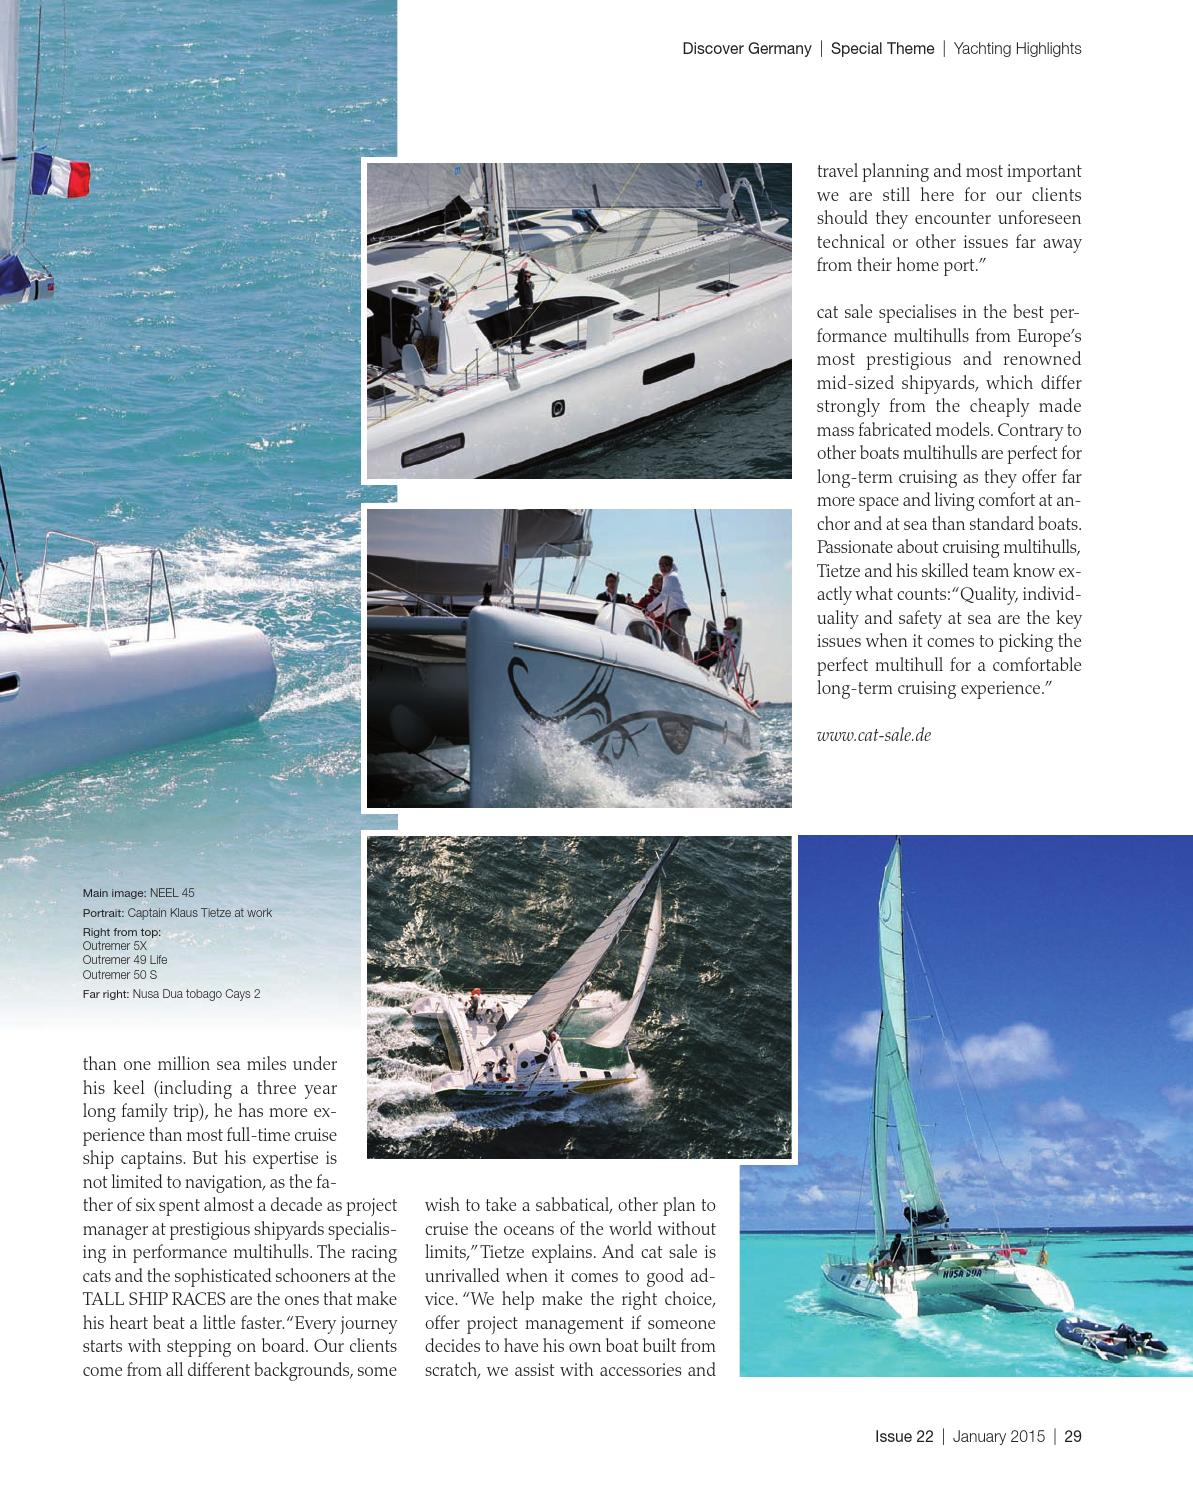 Discover Germany | Issue 22 | January 2015 by Scan Group - issuu